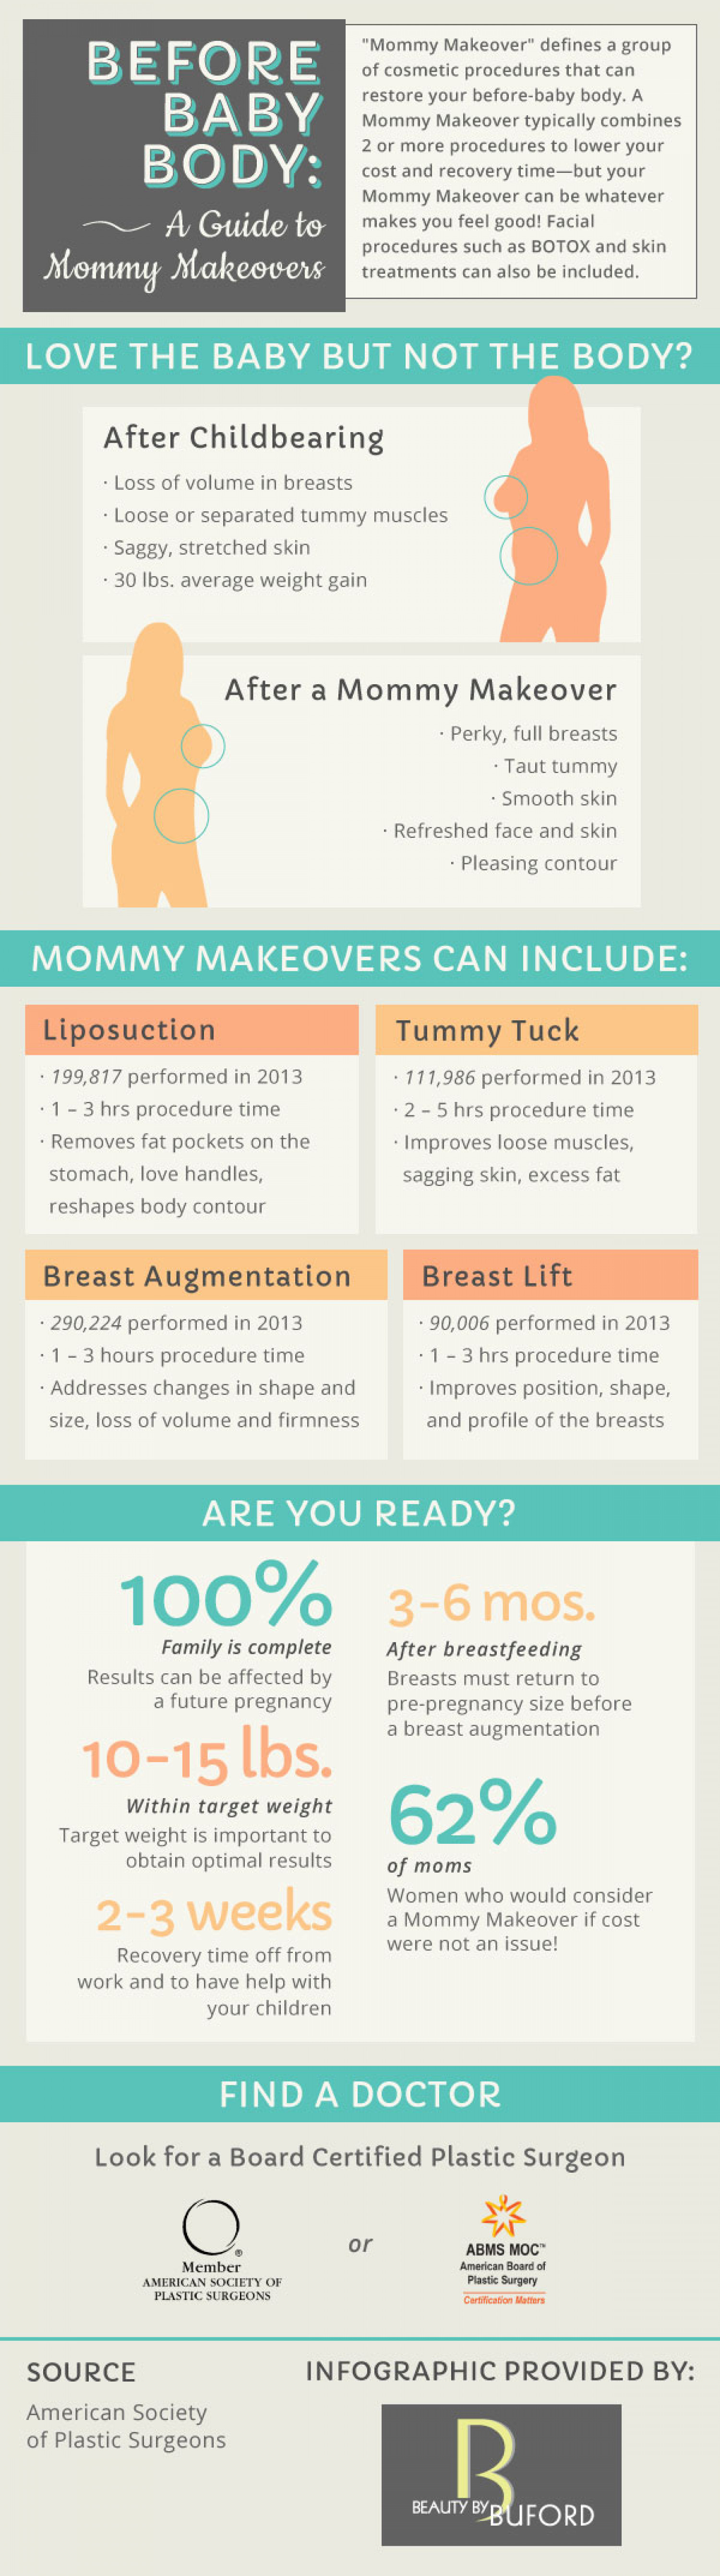 Before Baby Body: A Guide to Mommy Makeovers Infographic